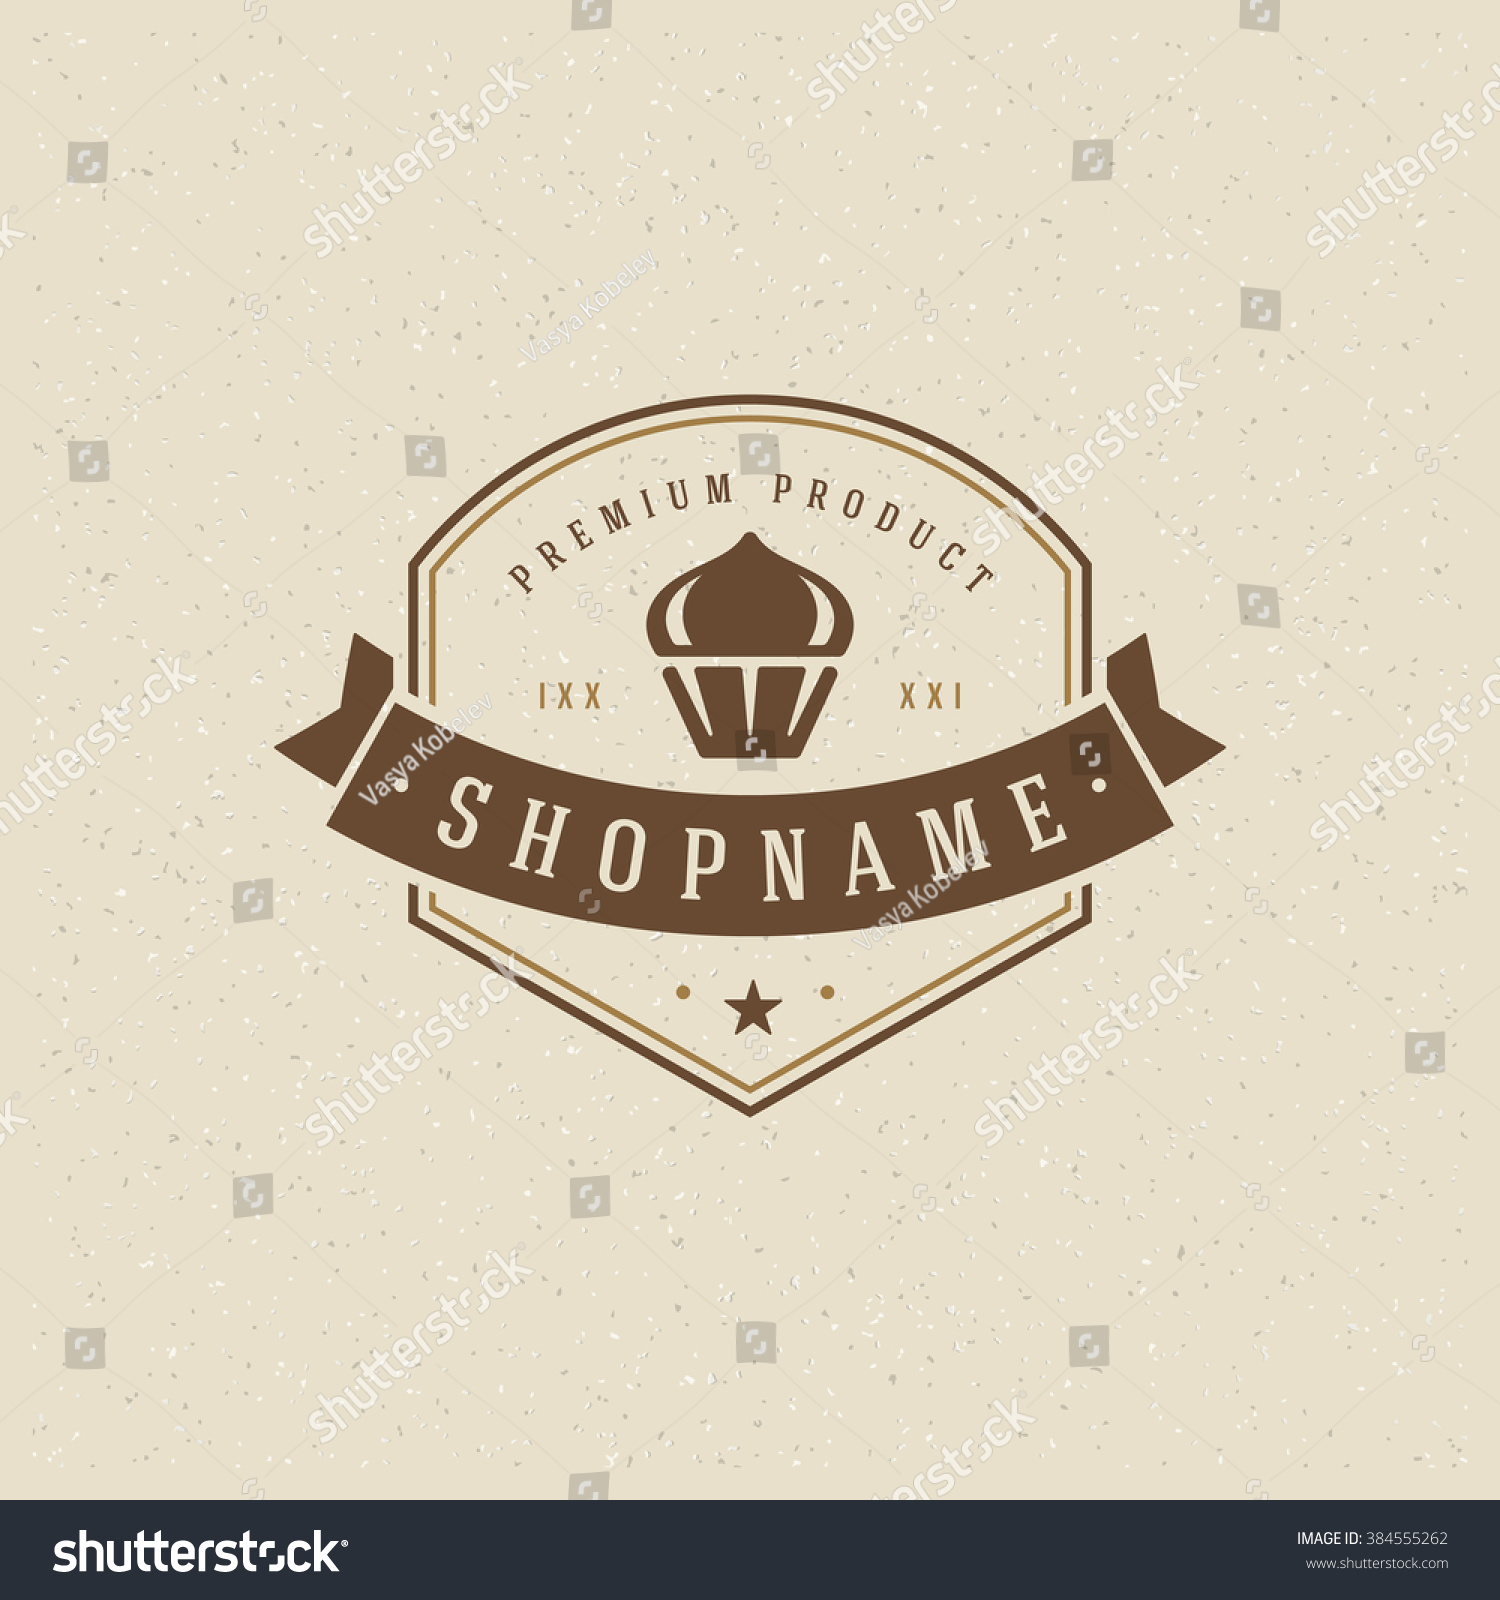 Bakery shop logo template vector design element vintage style for logotype label badge emblem cupcake silhouette bakery label baker logo cake icon